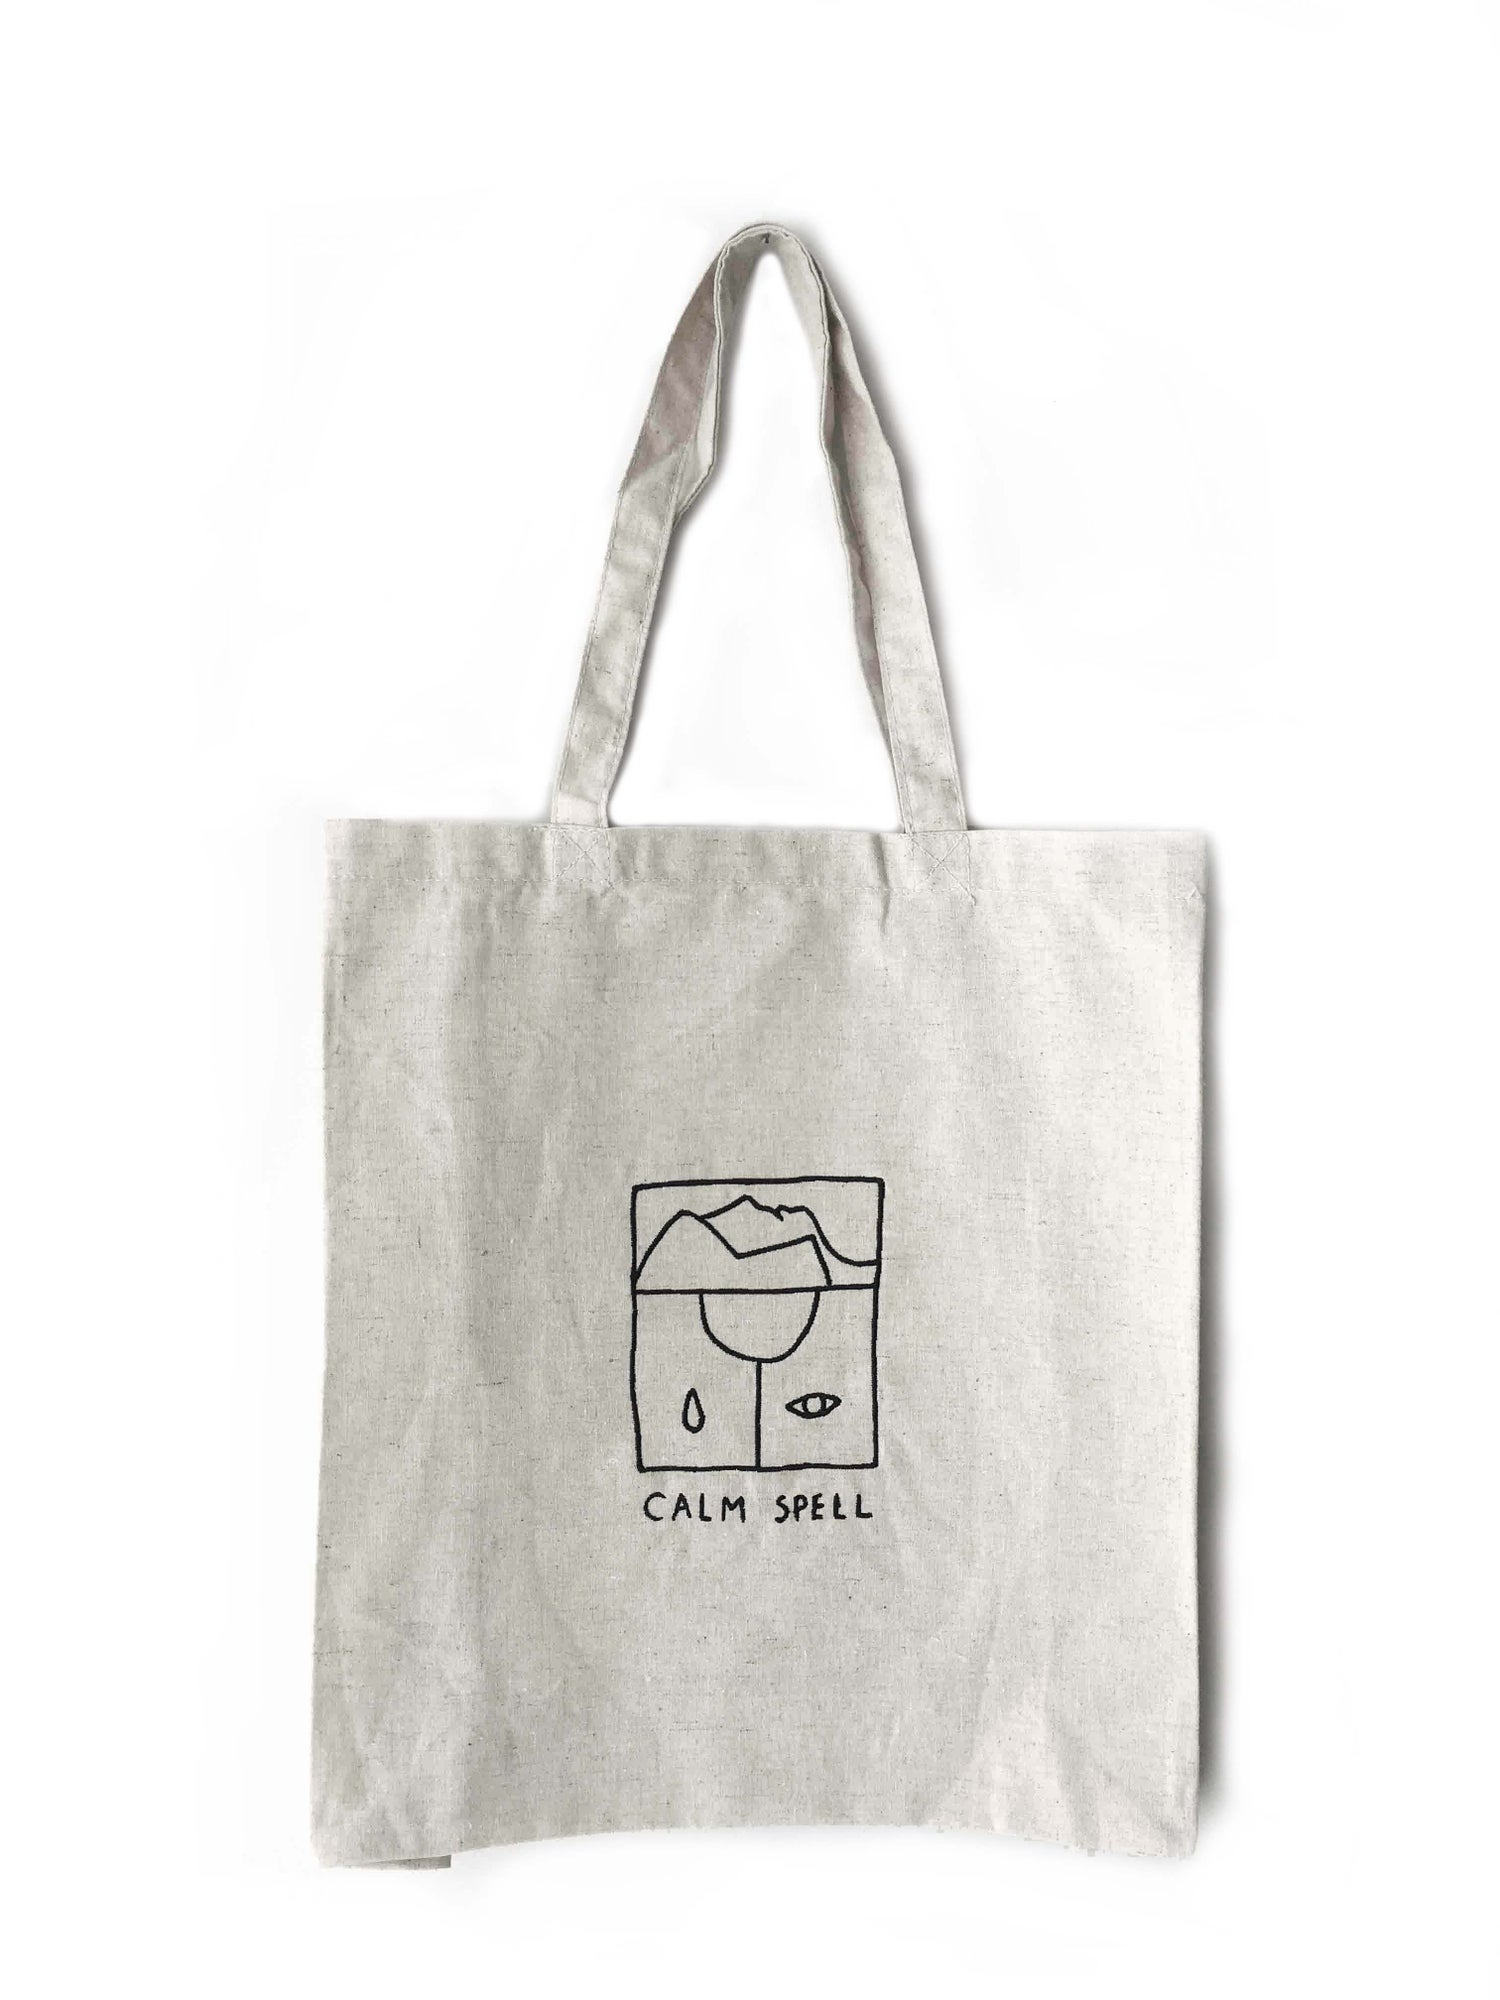 Image of Calm Spell Tote Bag